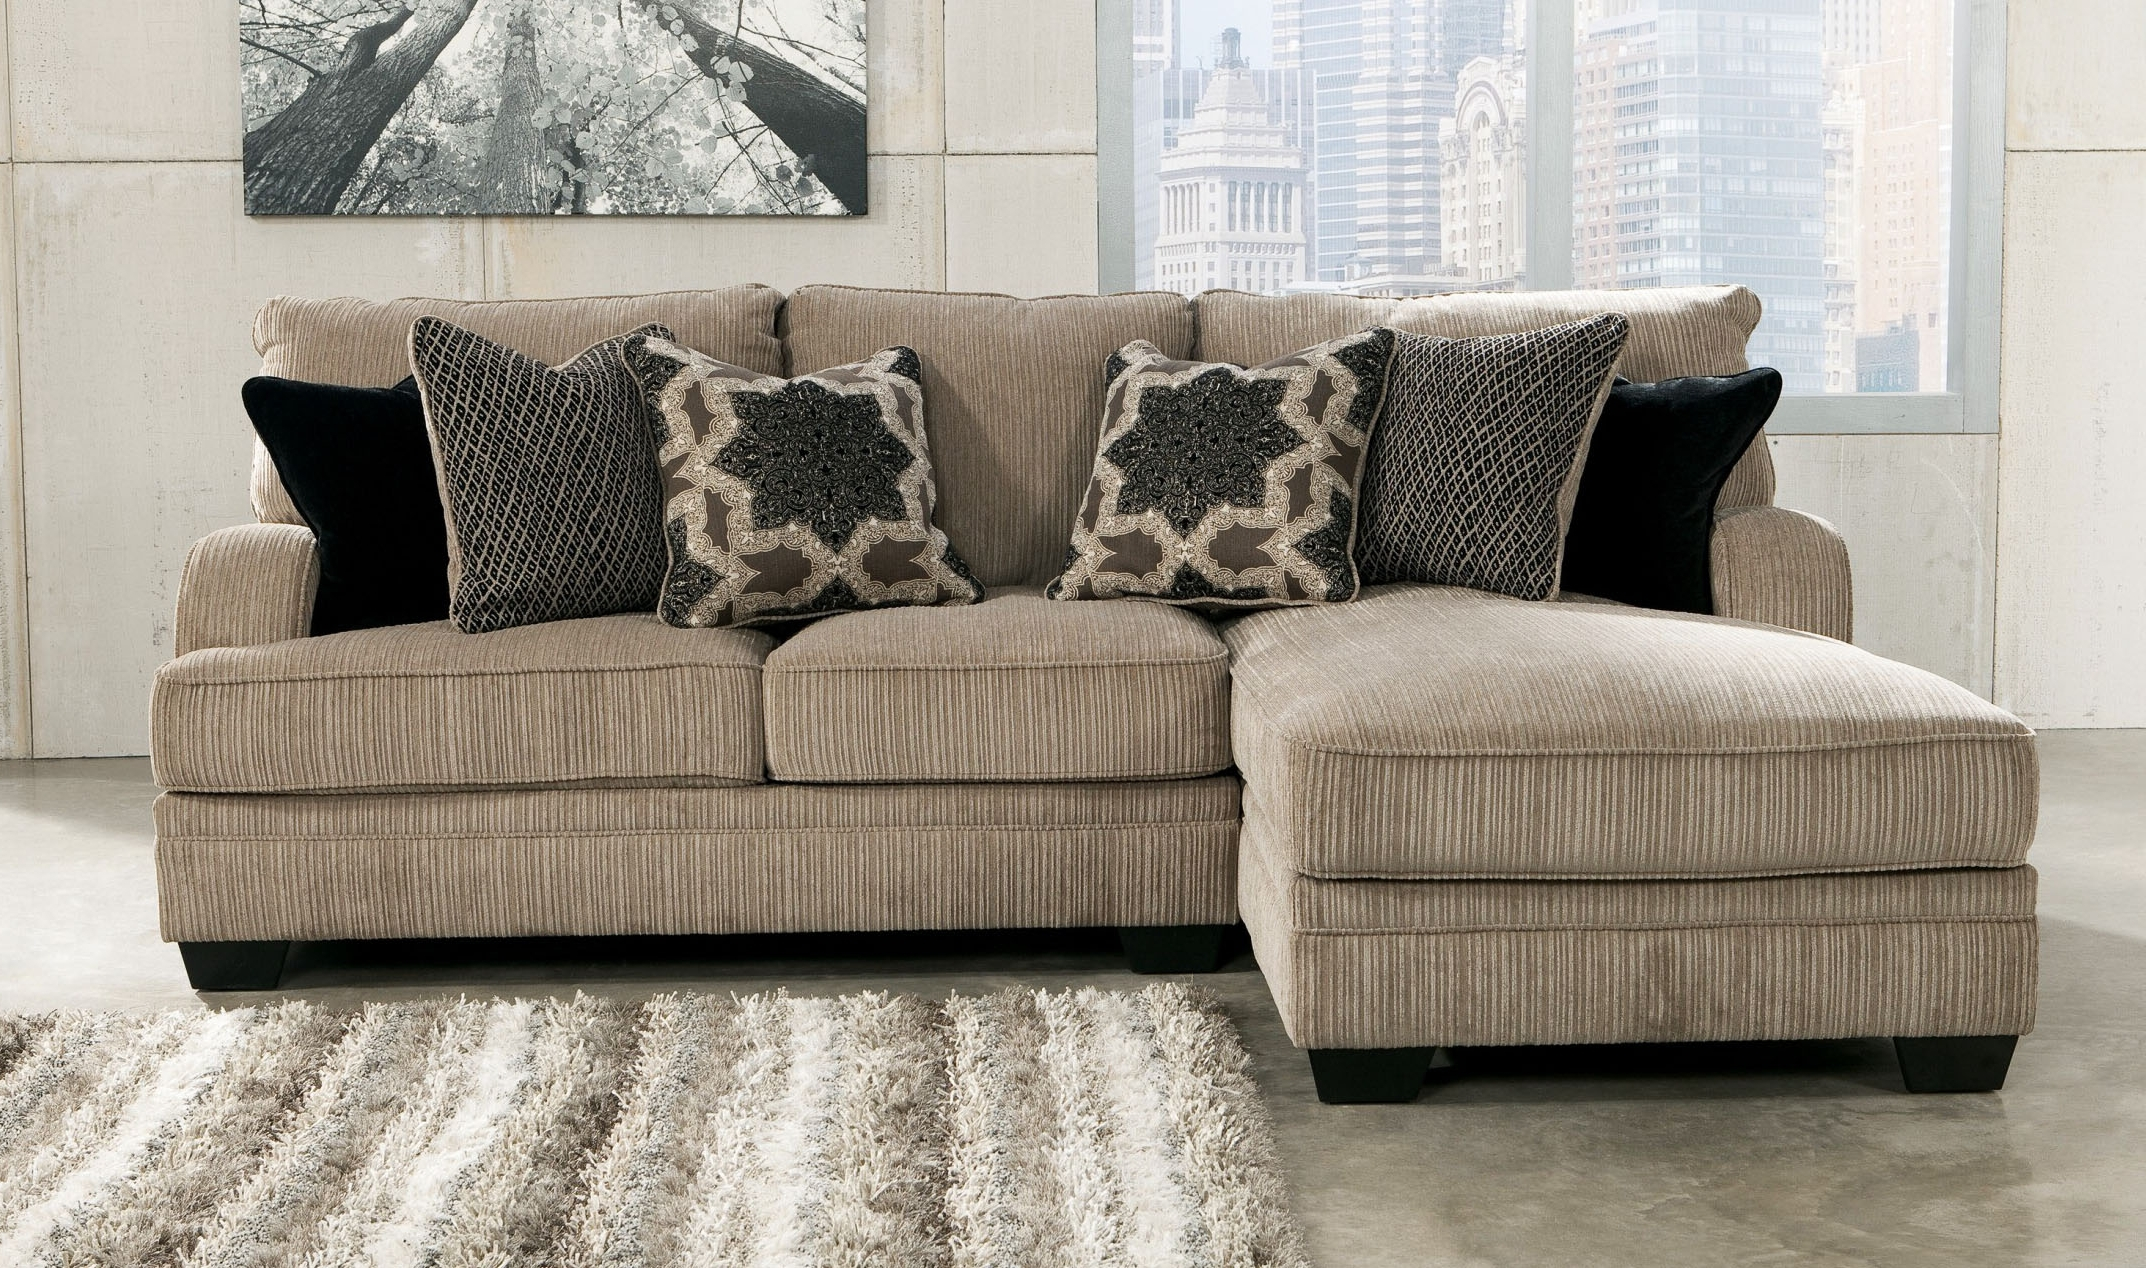 Luxury Small Sectional Sofa With Chaise Lounge 79 For Stickley Throughout Fashionable Small Sectional Sofas With Chaise (View 6 of 15)